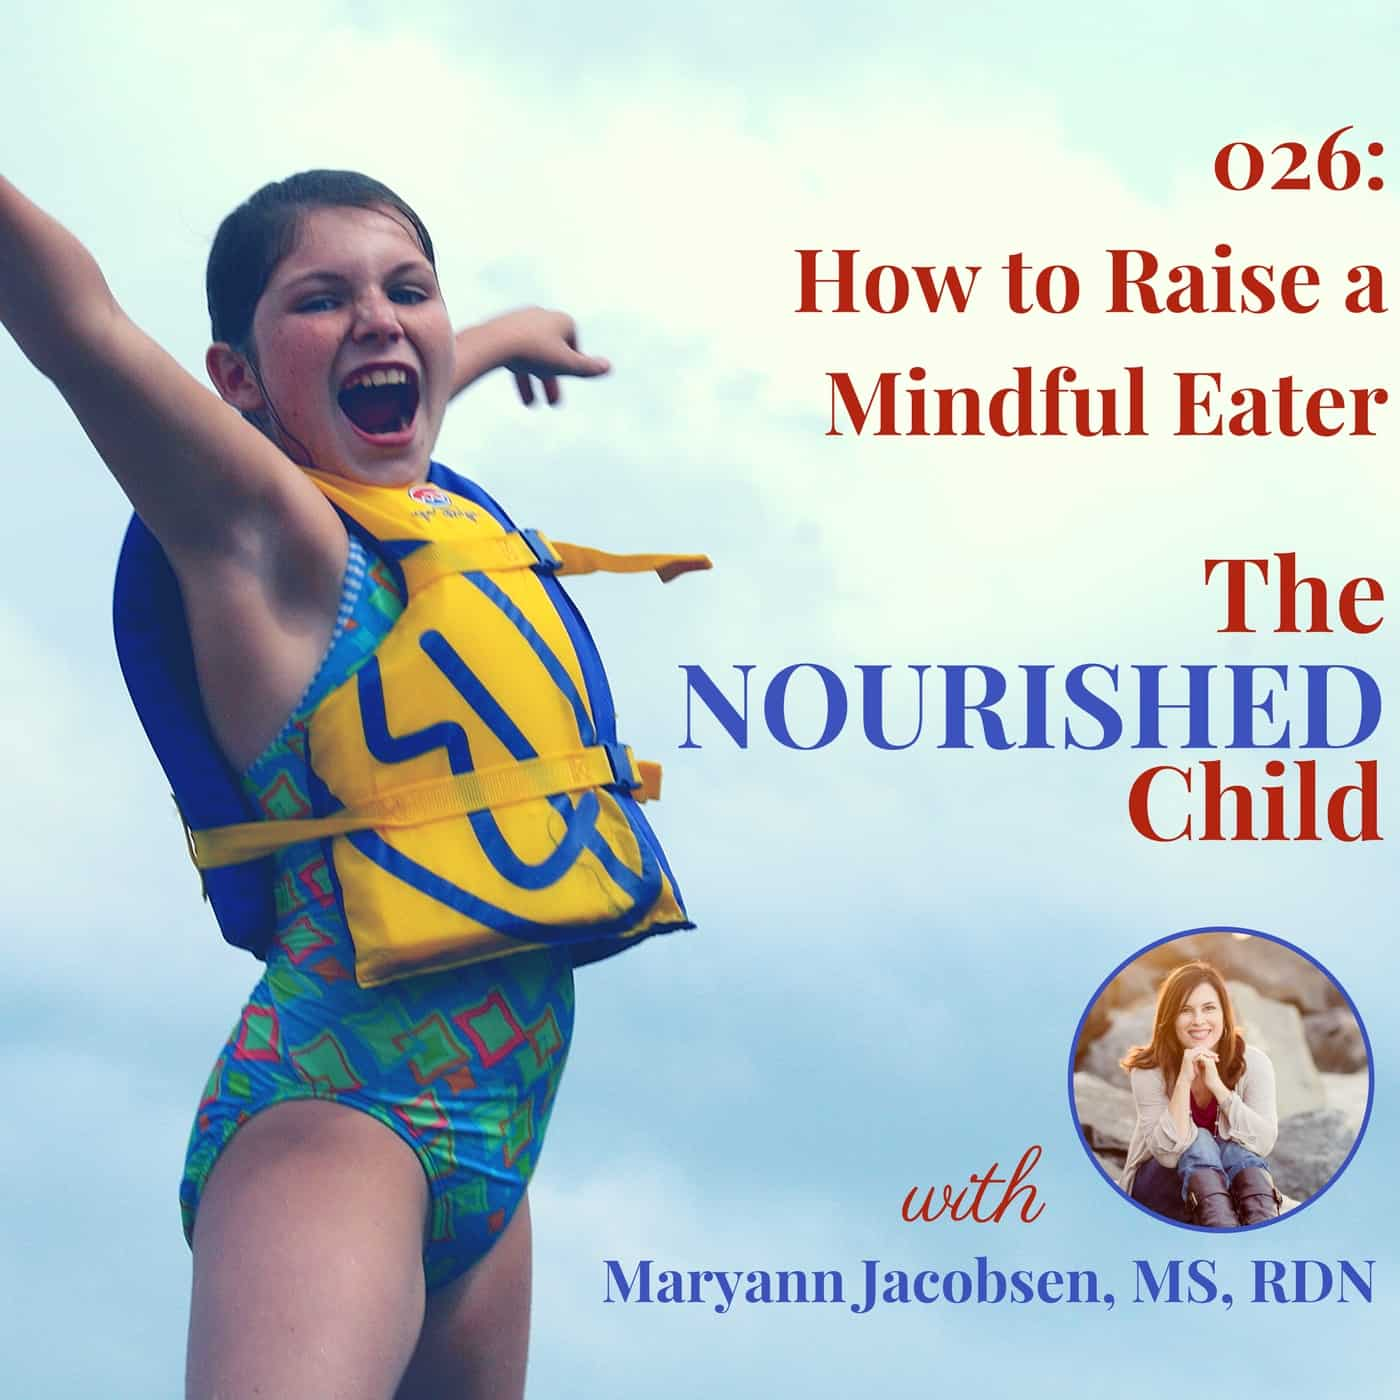 The Nourished Child podcast #26: How to Raise a Mindful Eater